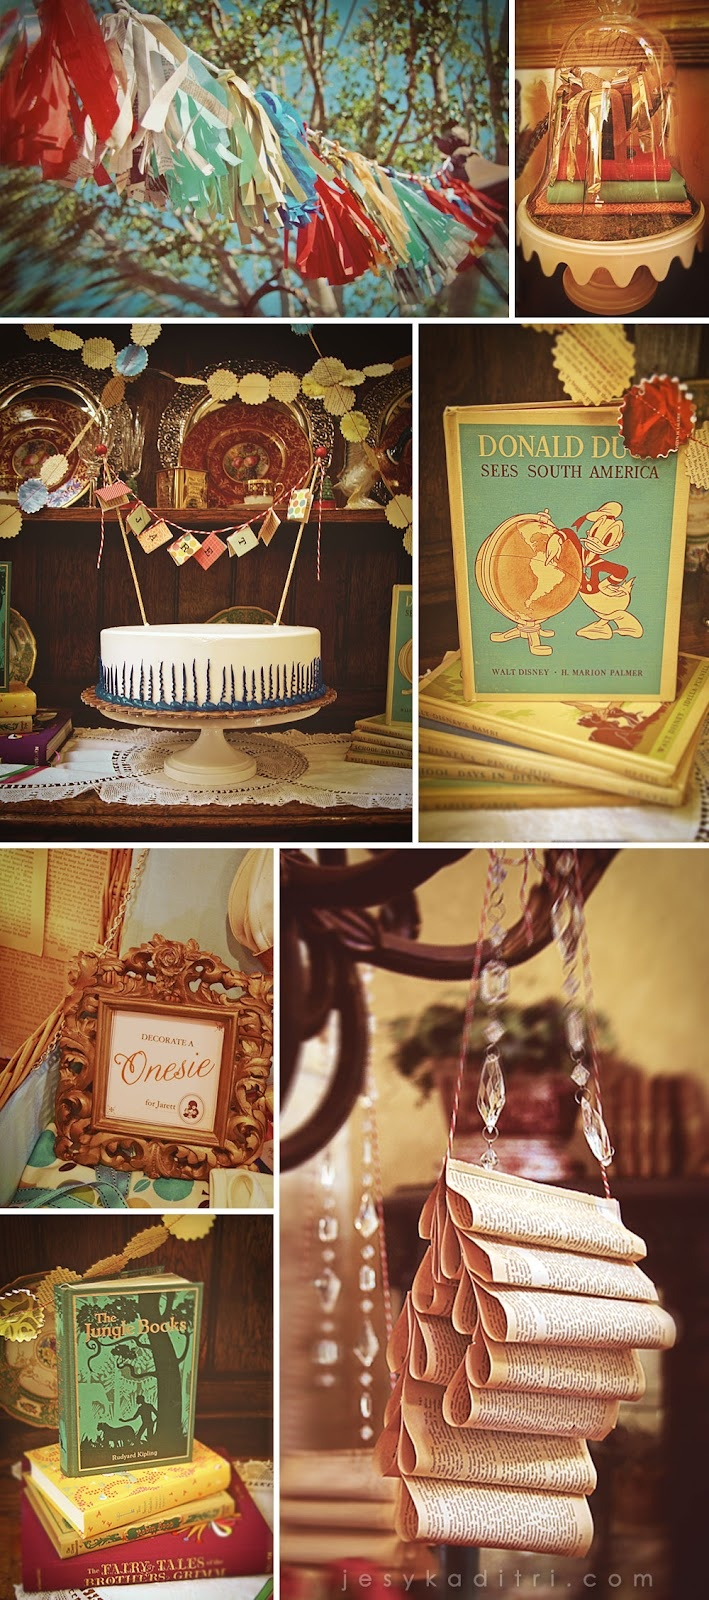 I like this theme for a baby shower, but add some other elements too so its not sooooooo charles dickensy...lol